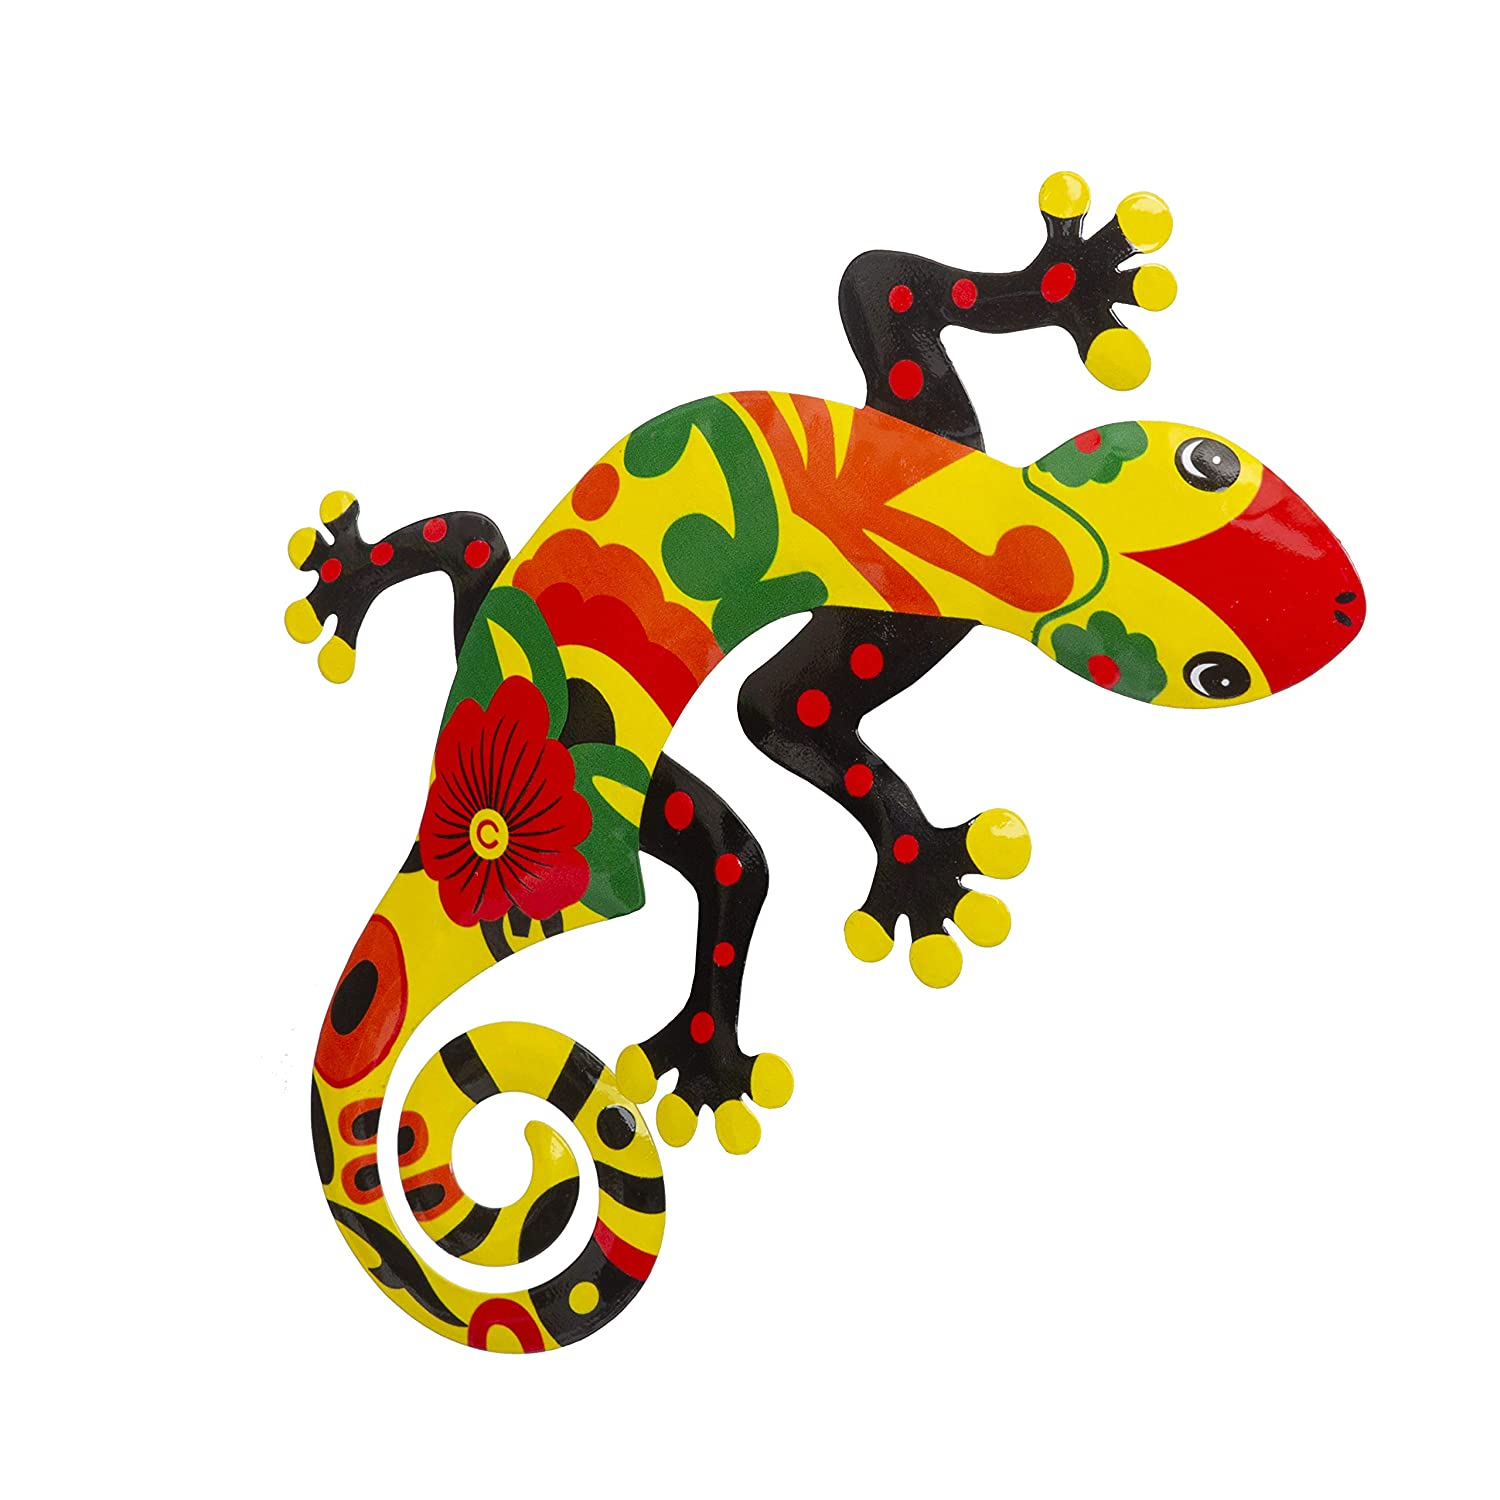 Whimsical Gecko Metal Wall Art | Talavera-Style Home Decor | Stylish Wall Decorations for Living Room, Kitchen, Outdoors, Office, Bedroom, Garden, Bathroom | 13x12 Inches (Gecko)